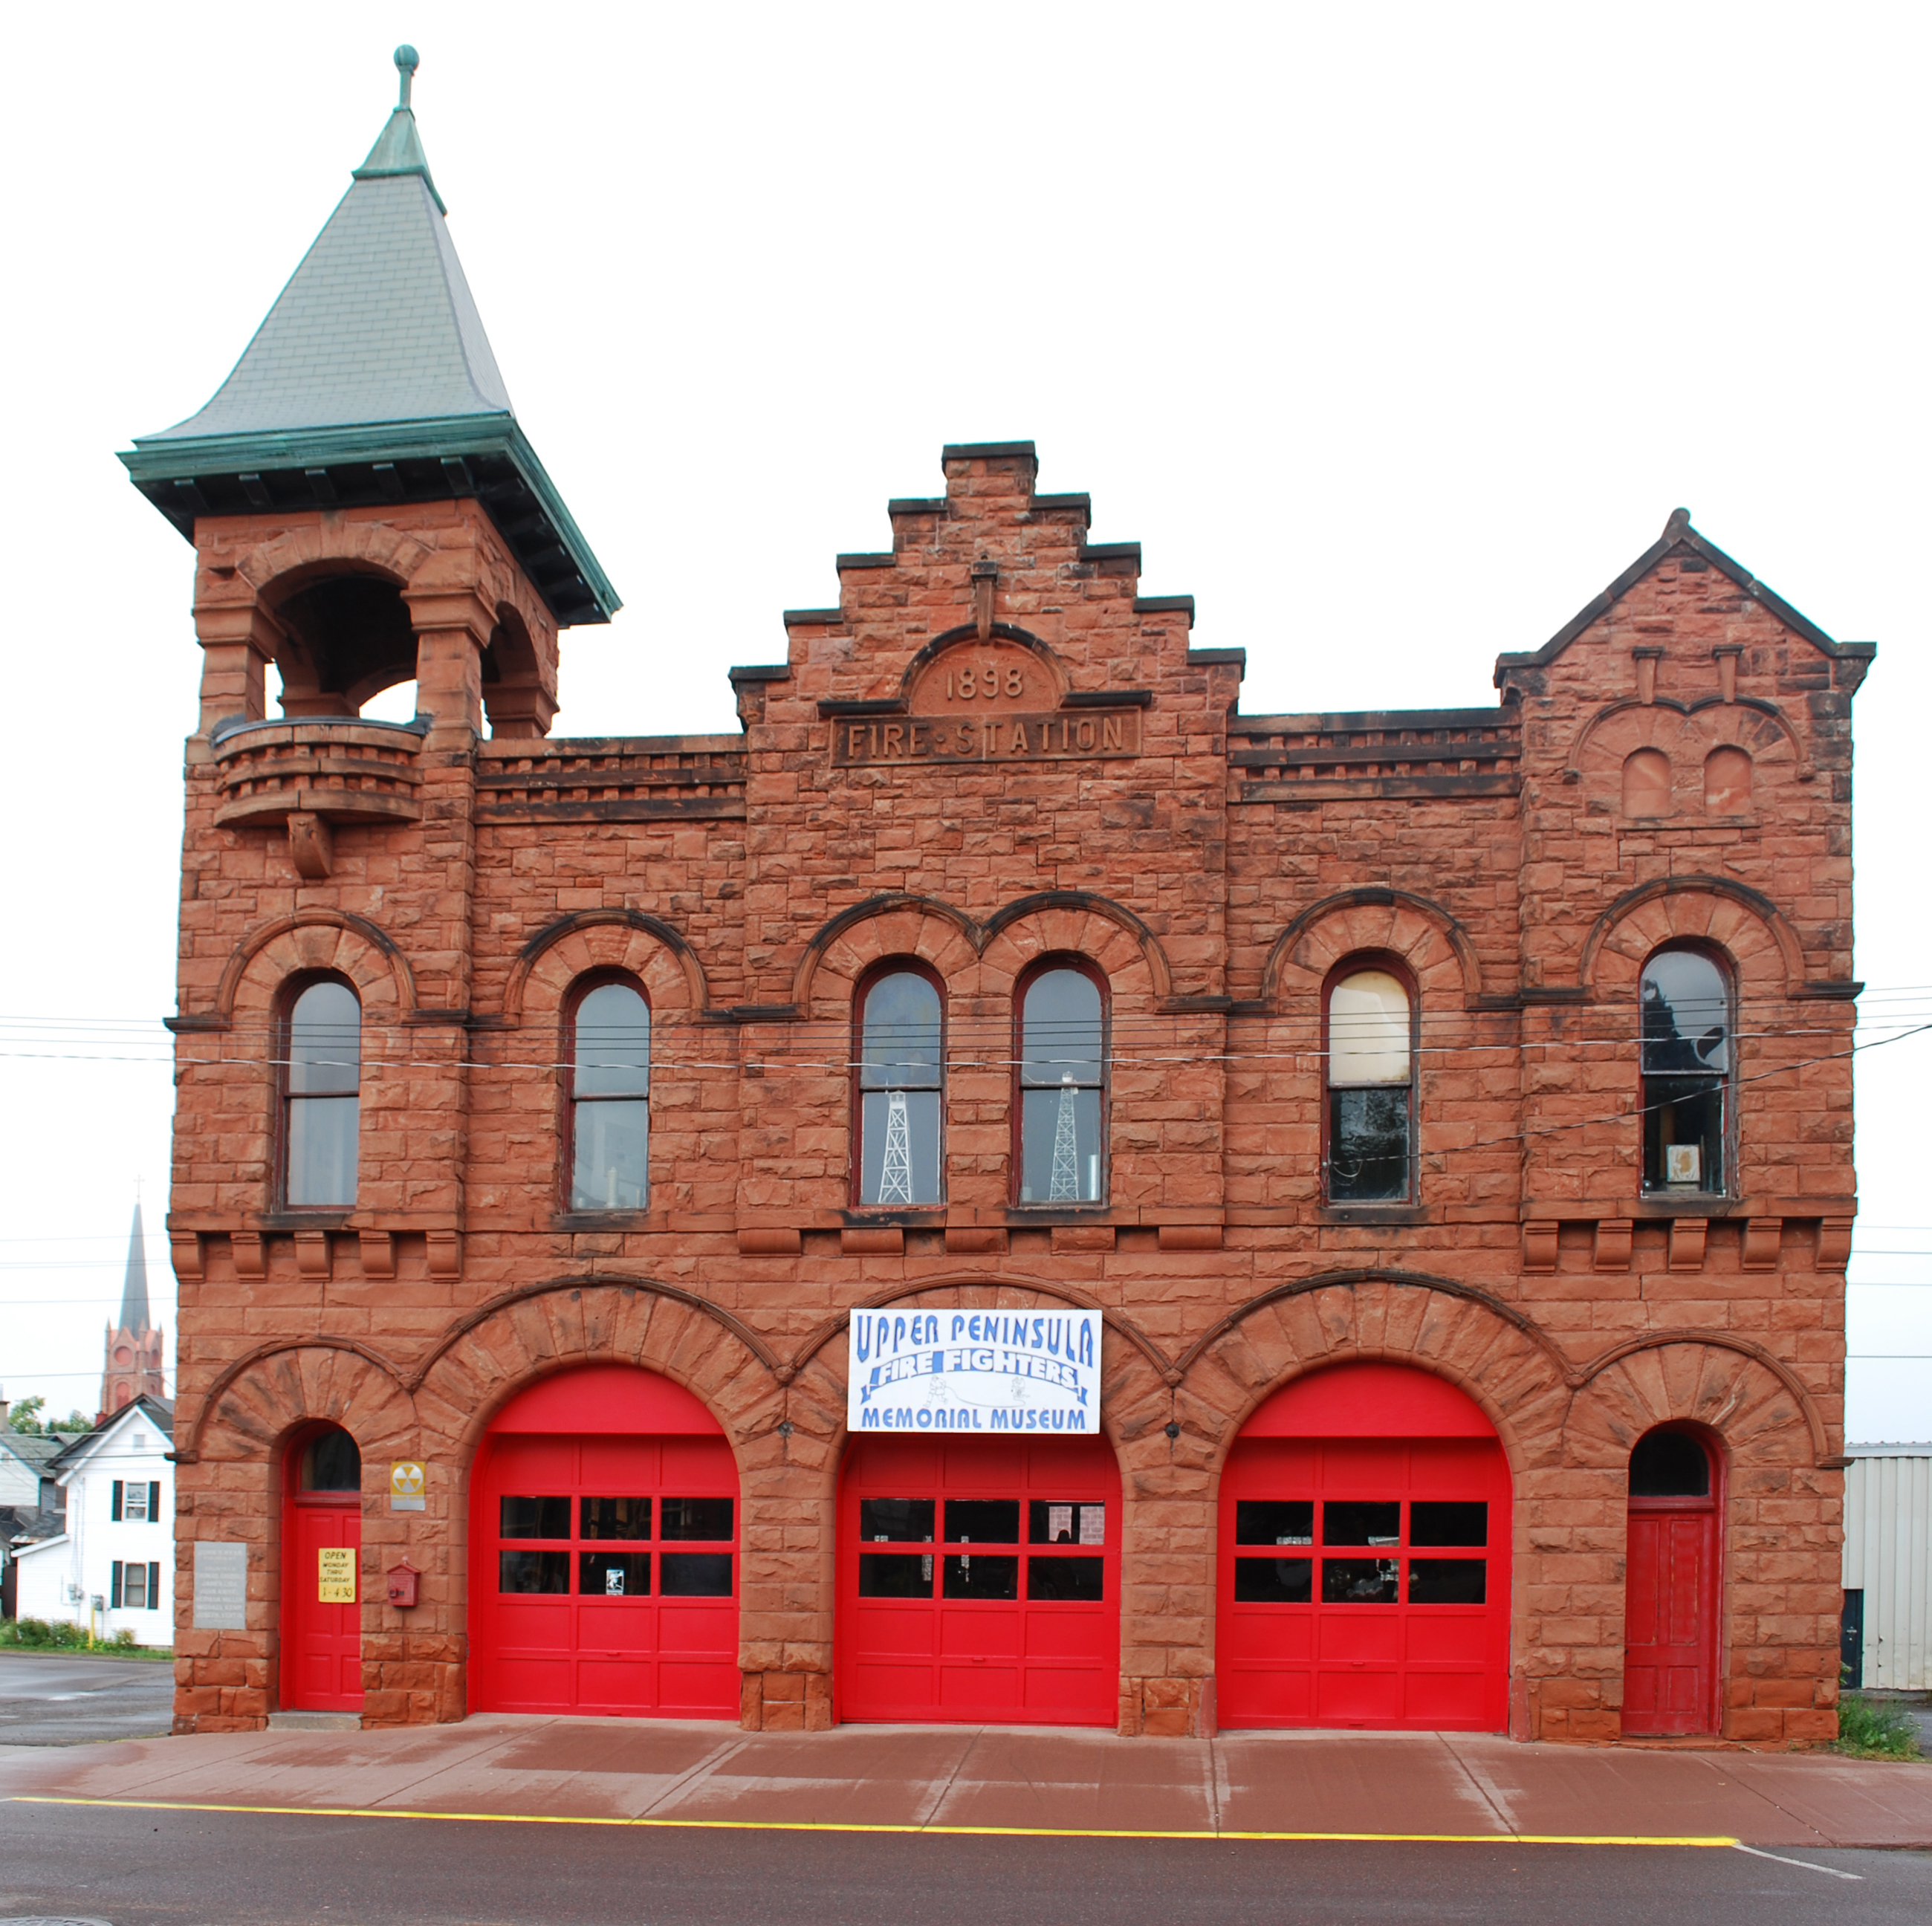 The Upper Peninsula Fire Fighters Memorial Museum